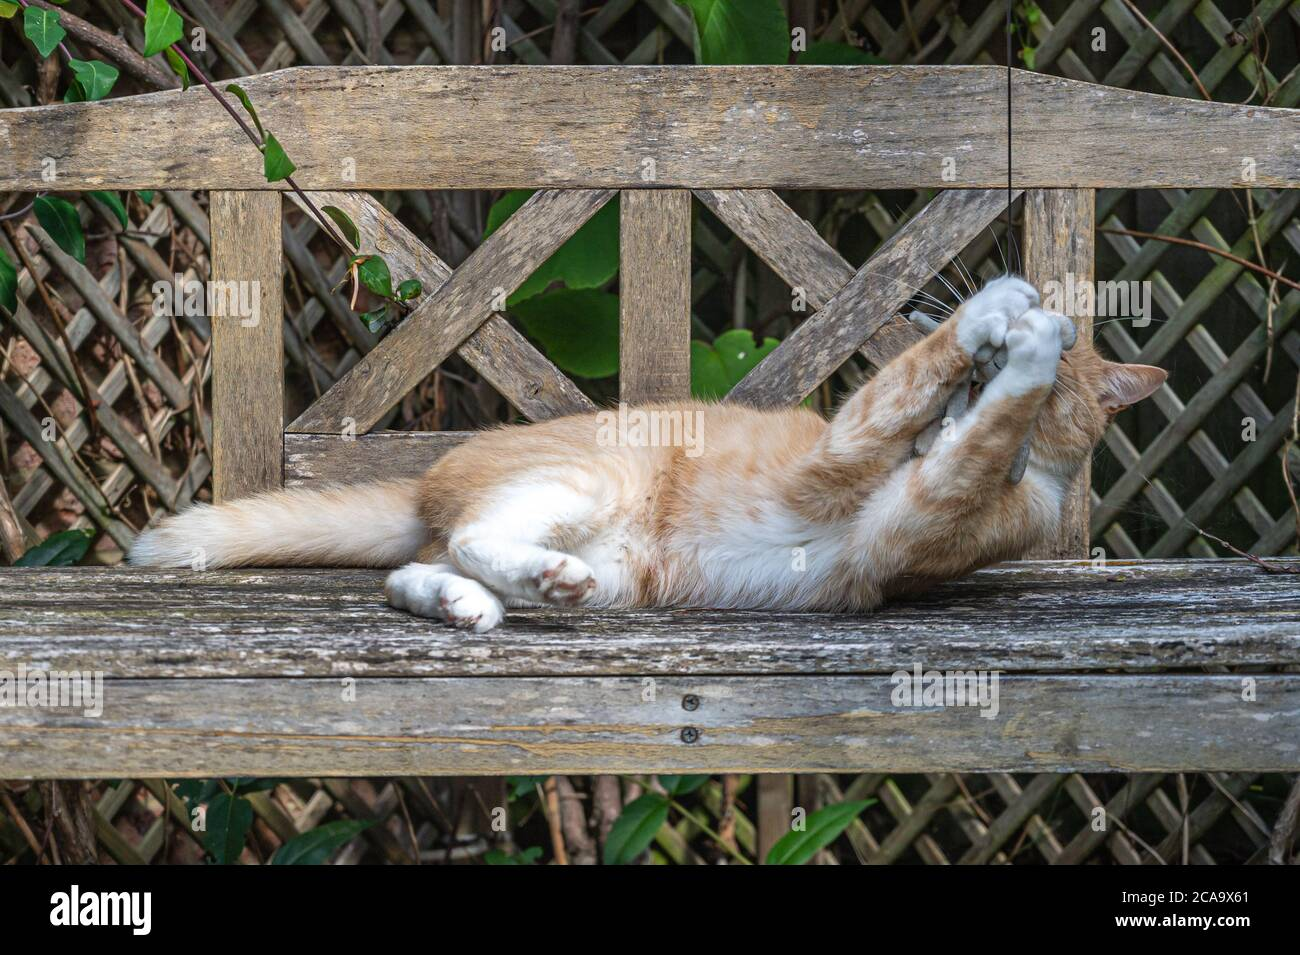 Playful ginger cat on wooden bench with white paws around cat toy Stock Photo